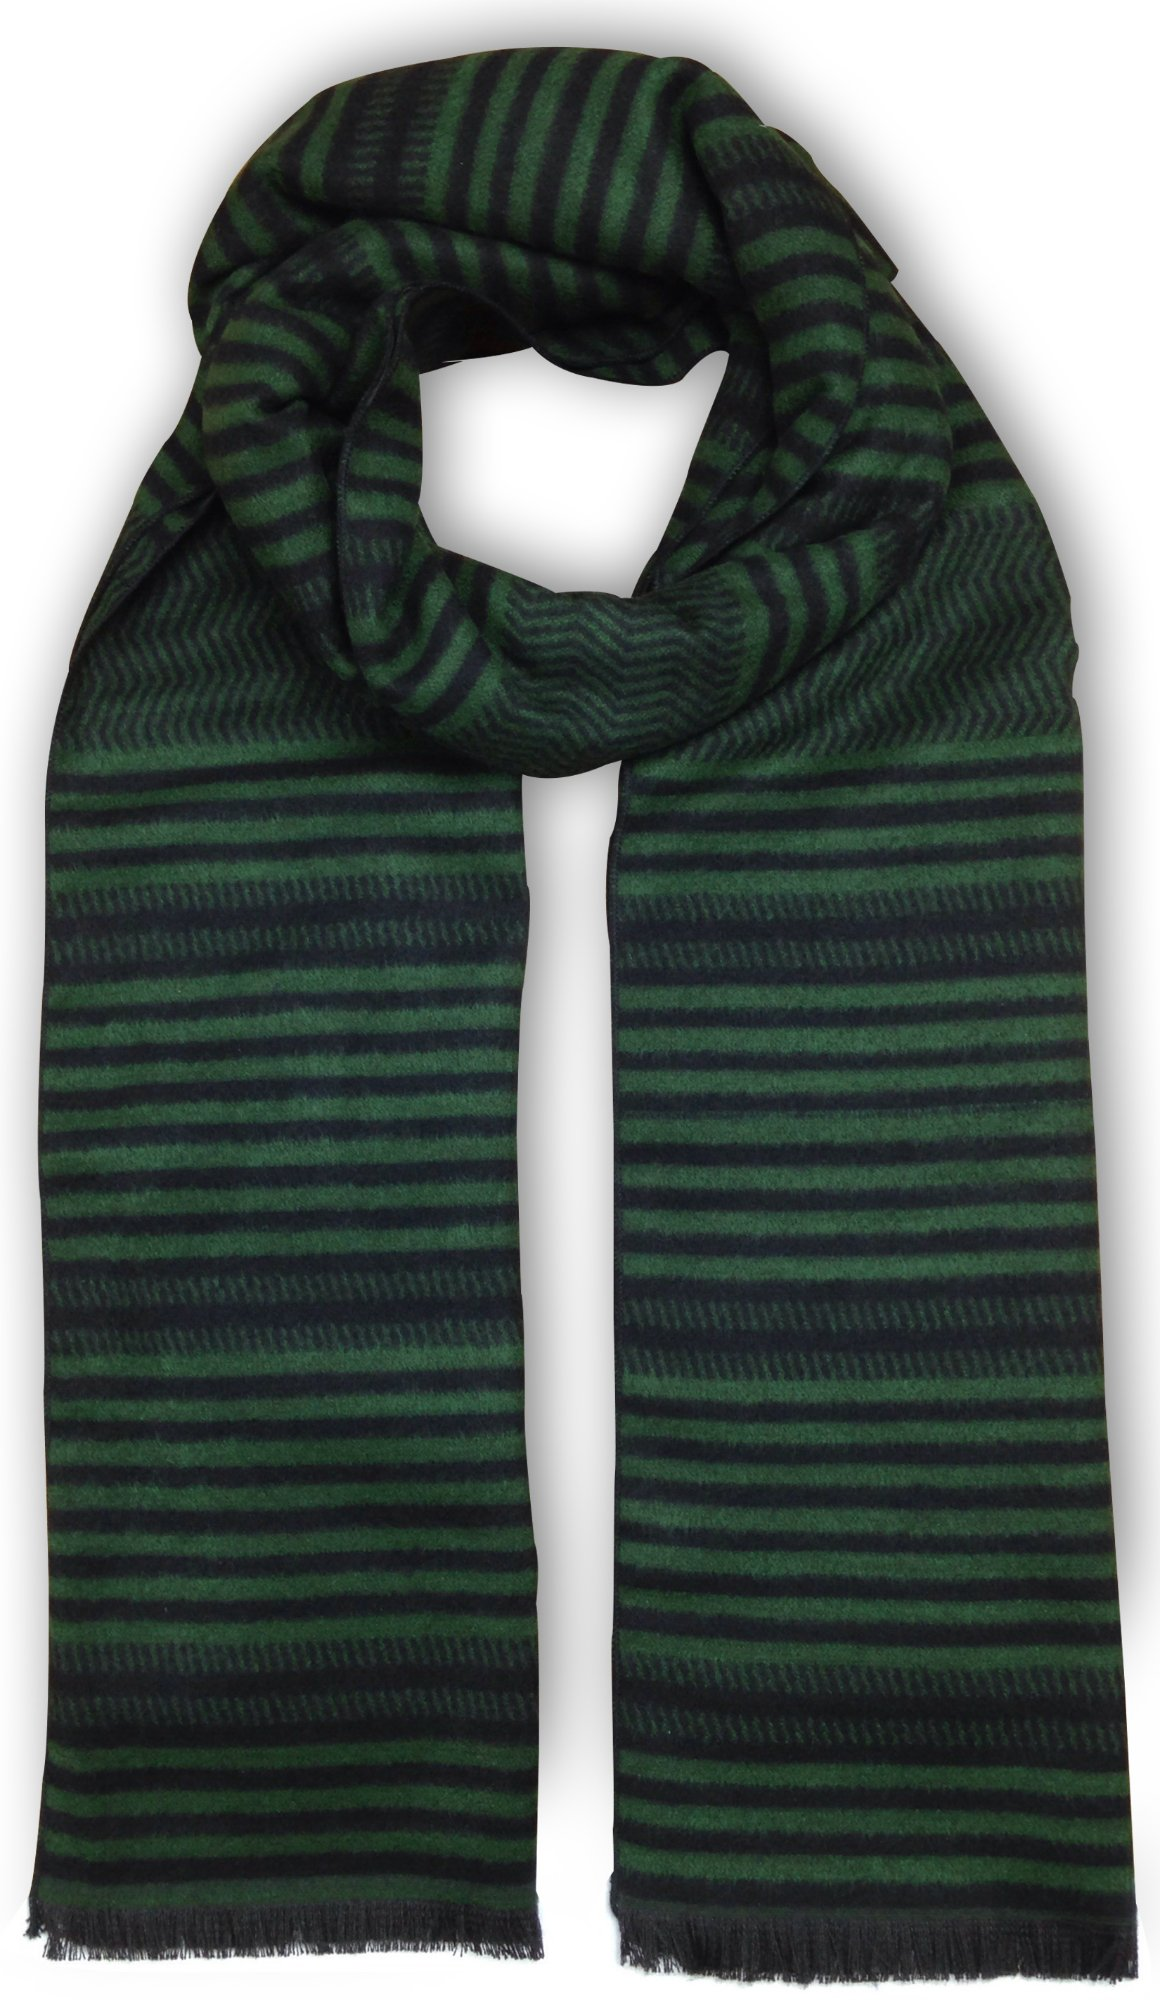 Bleu Nero Luxurious Winter Scarf for Men and Women – Large Selection of Unique Design Scarves – Super Soft Premium Cashmere Feel (Green/Black Horizontal Thin Strips)